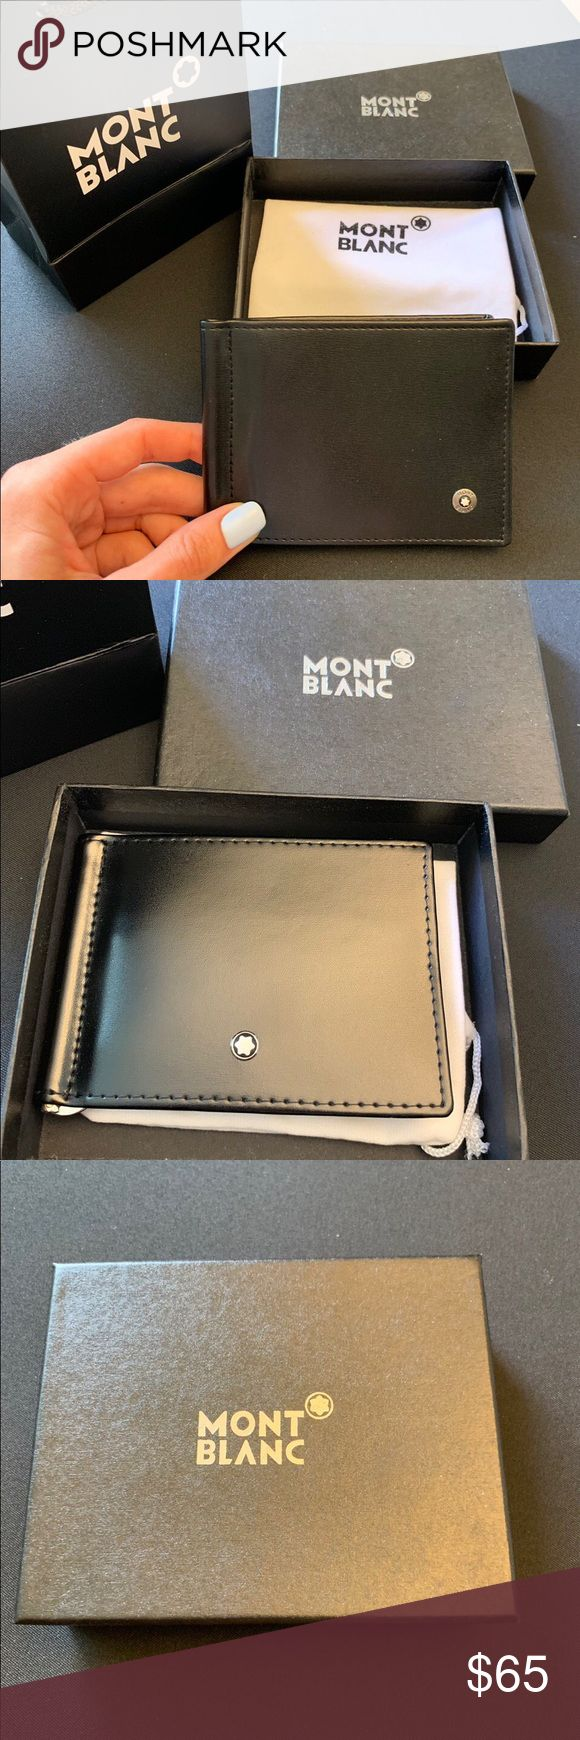 Montblanc Credit Cards And Money Holder New Montblanc Accessories Key & Card Hol…